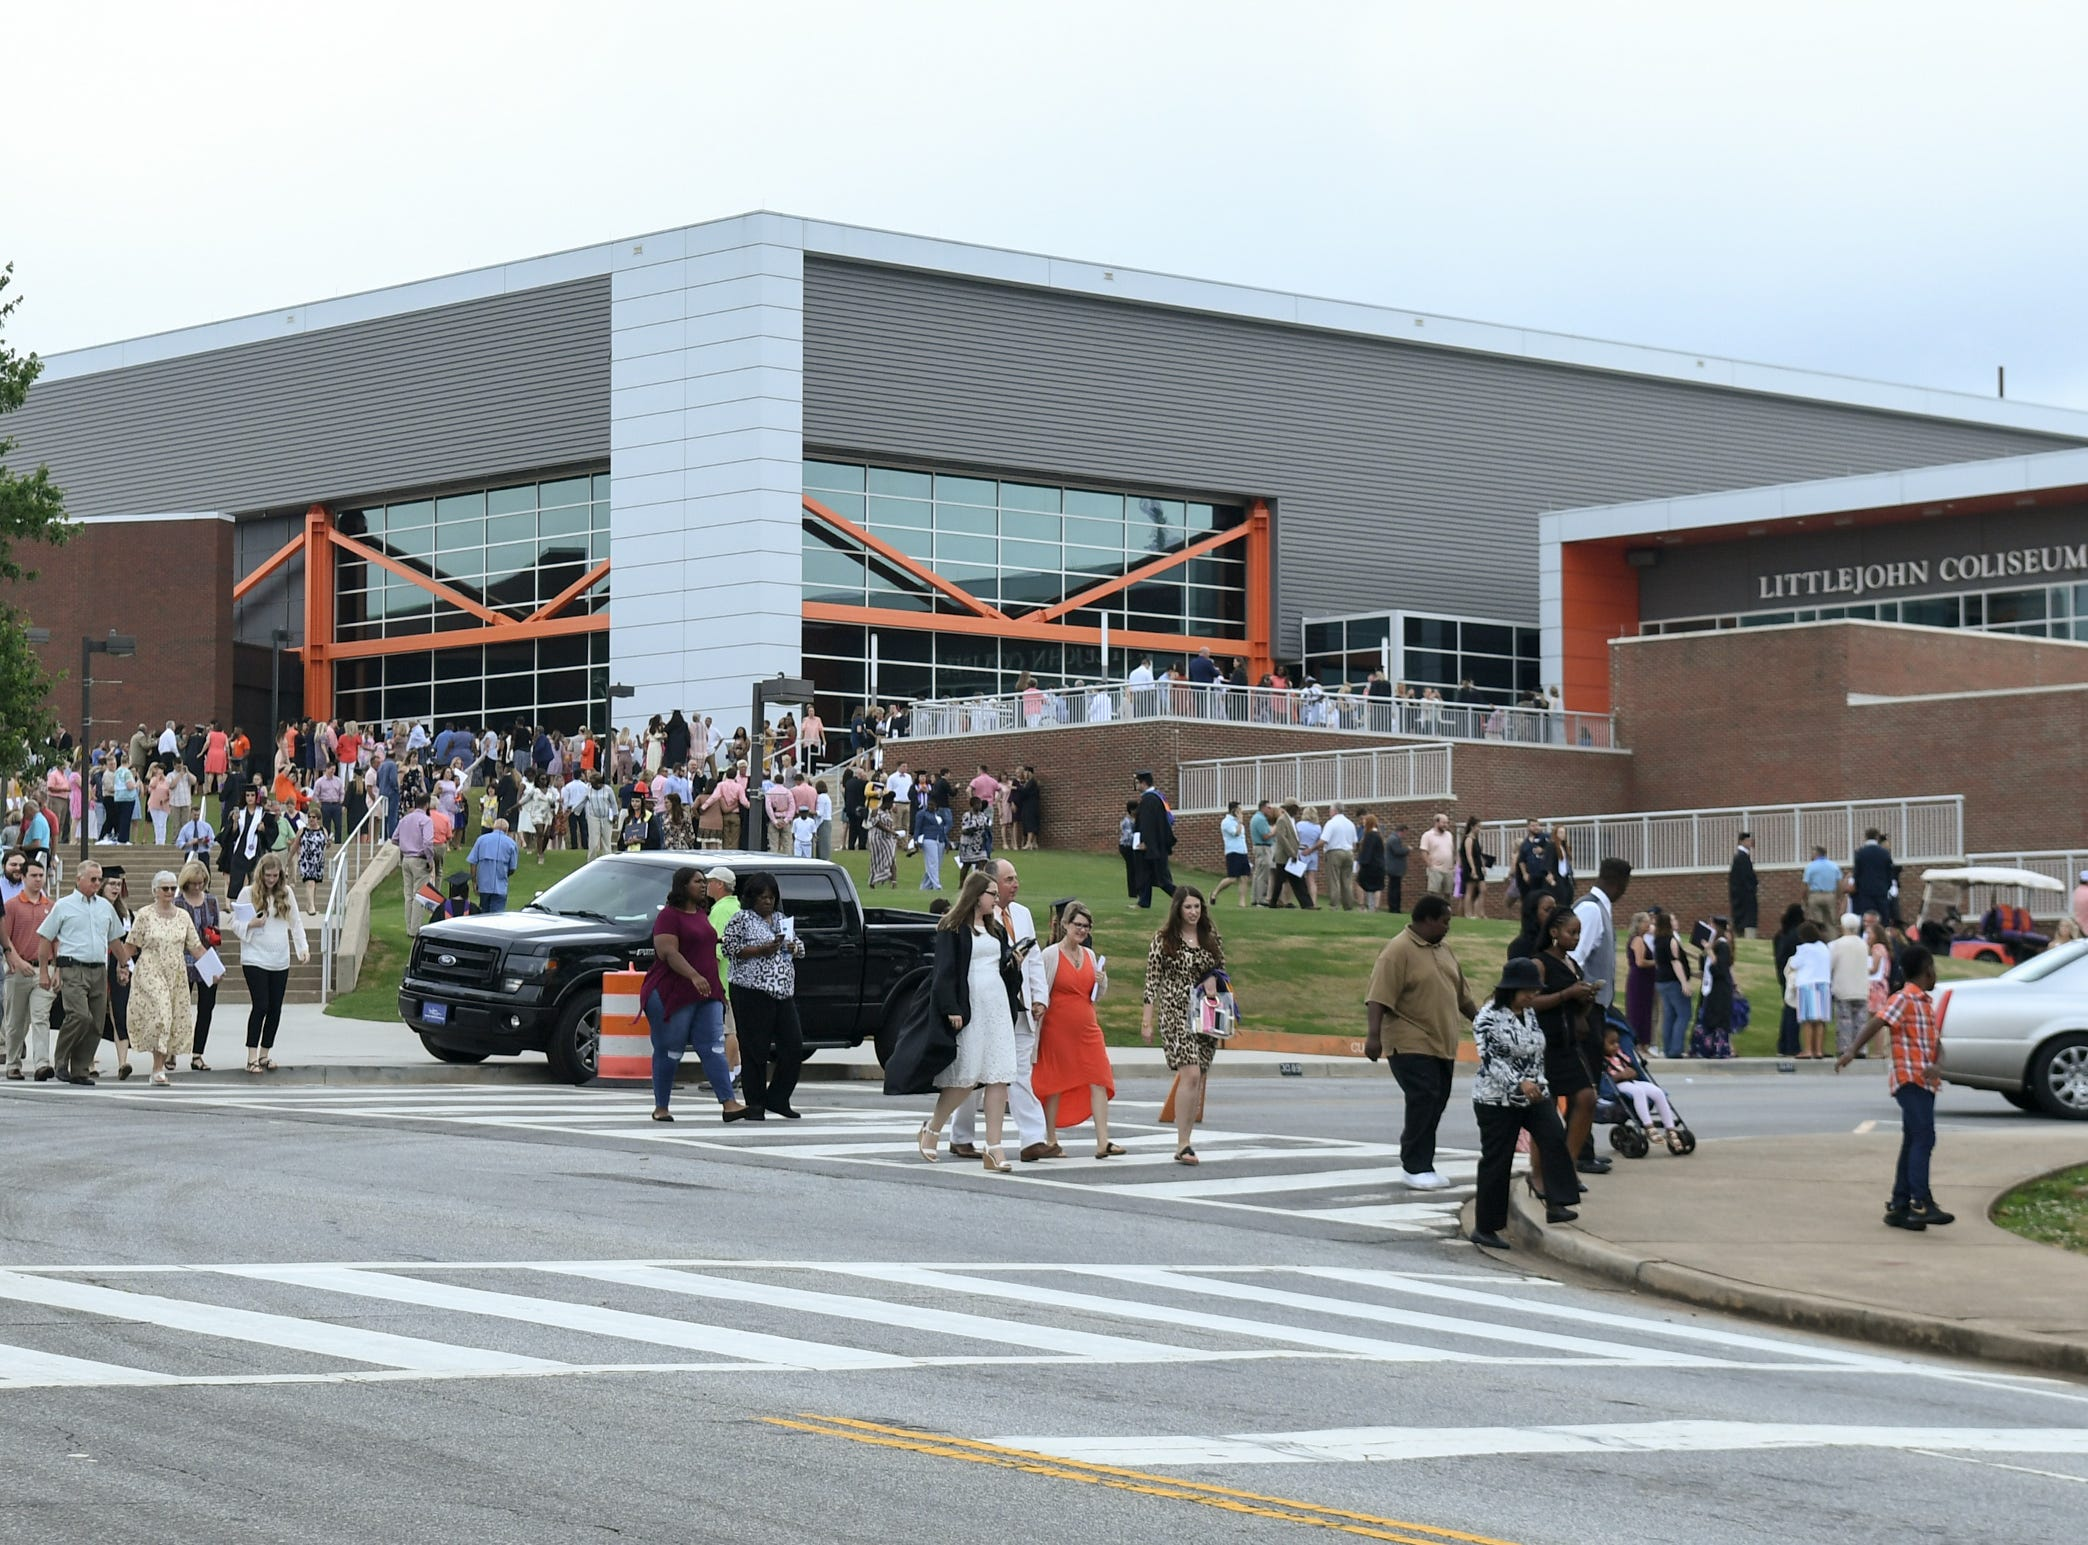 People leave after Clemson University commencement ceremonies in Littlejohn Coliseum in Clemson Friday, May 10, 2019.